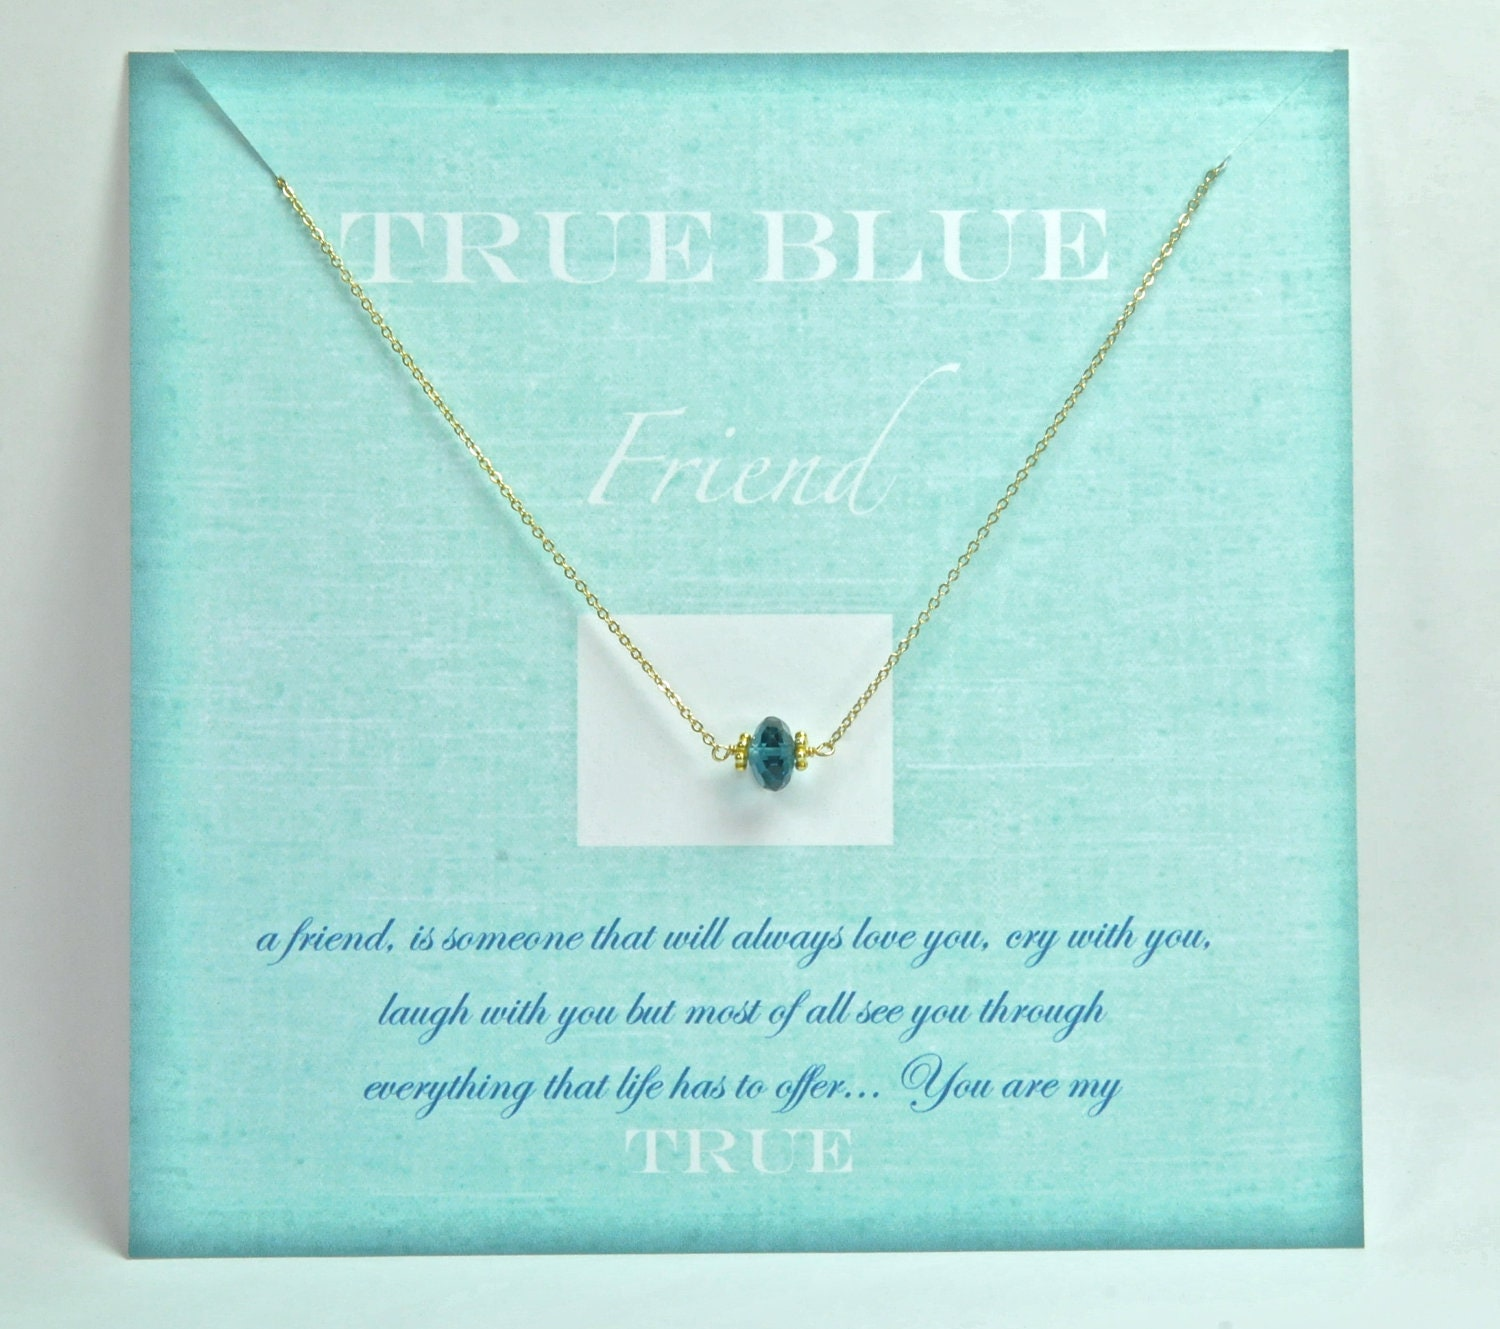 Wedding Gift For Friend Ideas : Wedding Gifts Ideas For Friends Blue friend gift ideas/